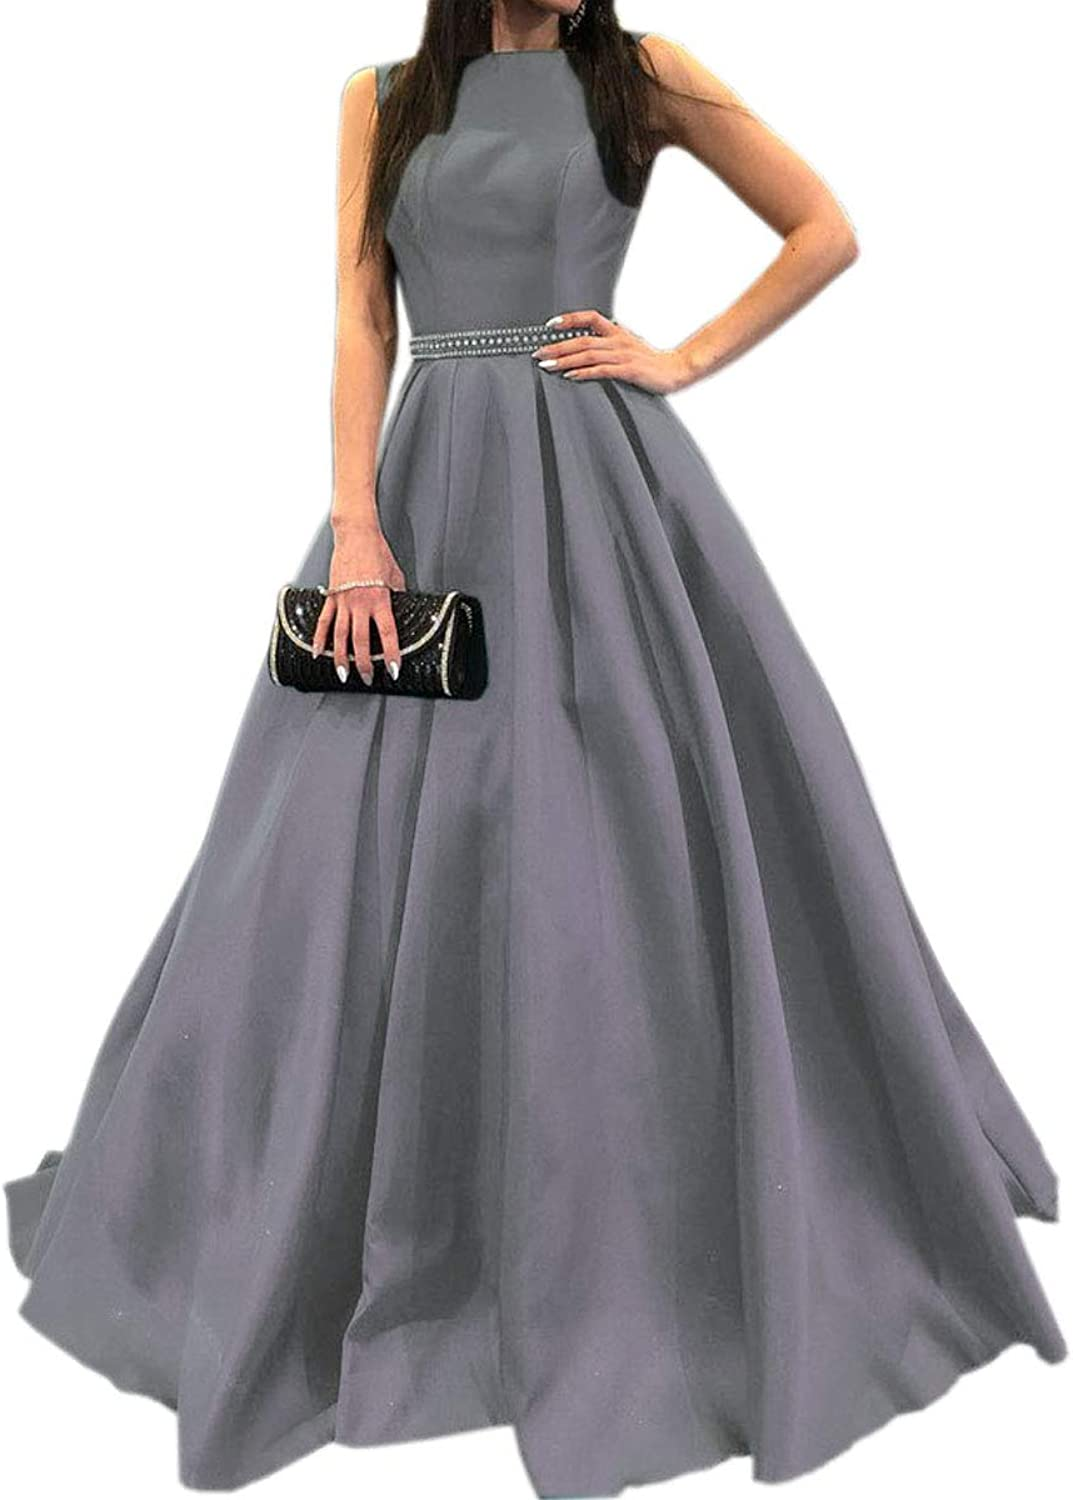 Mauwey Women's Deep V Back Aline Beaded Satin Evening Prom Dress Long Formal Gown with Pockets